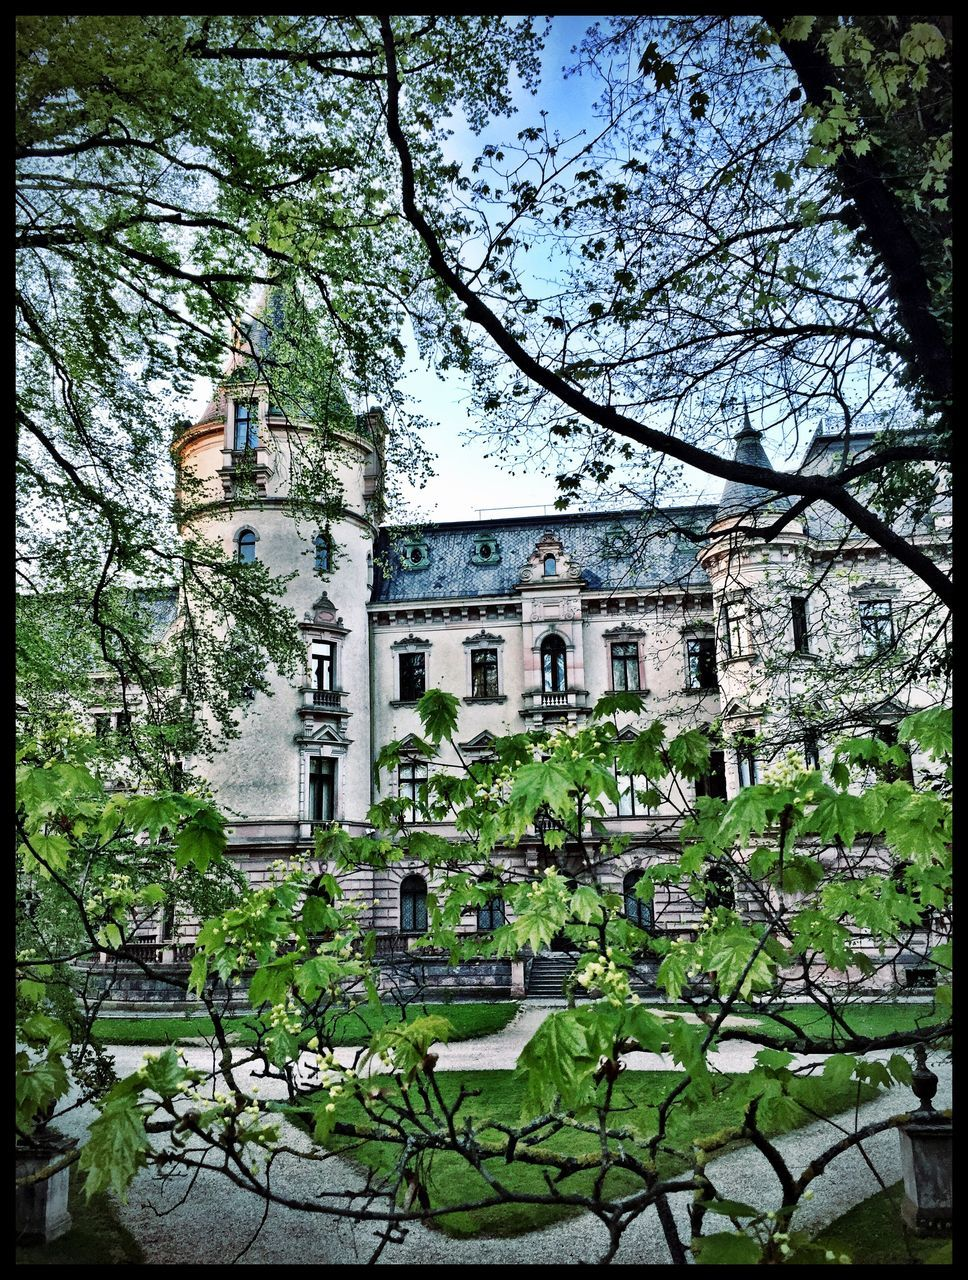 architecture, tree, building exterior, history, built structure, outdoors, no people, day, branch, city